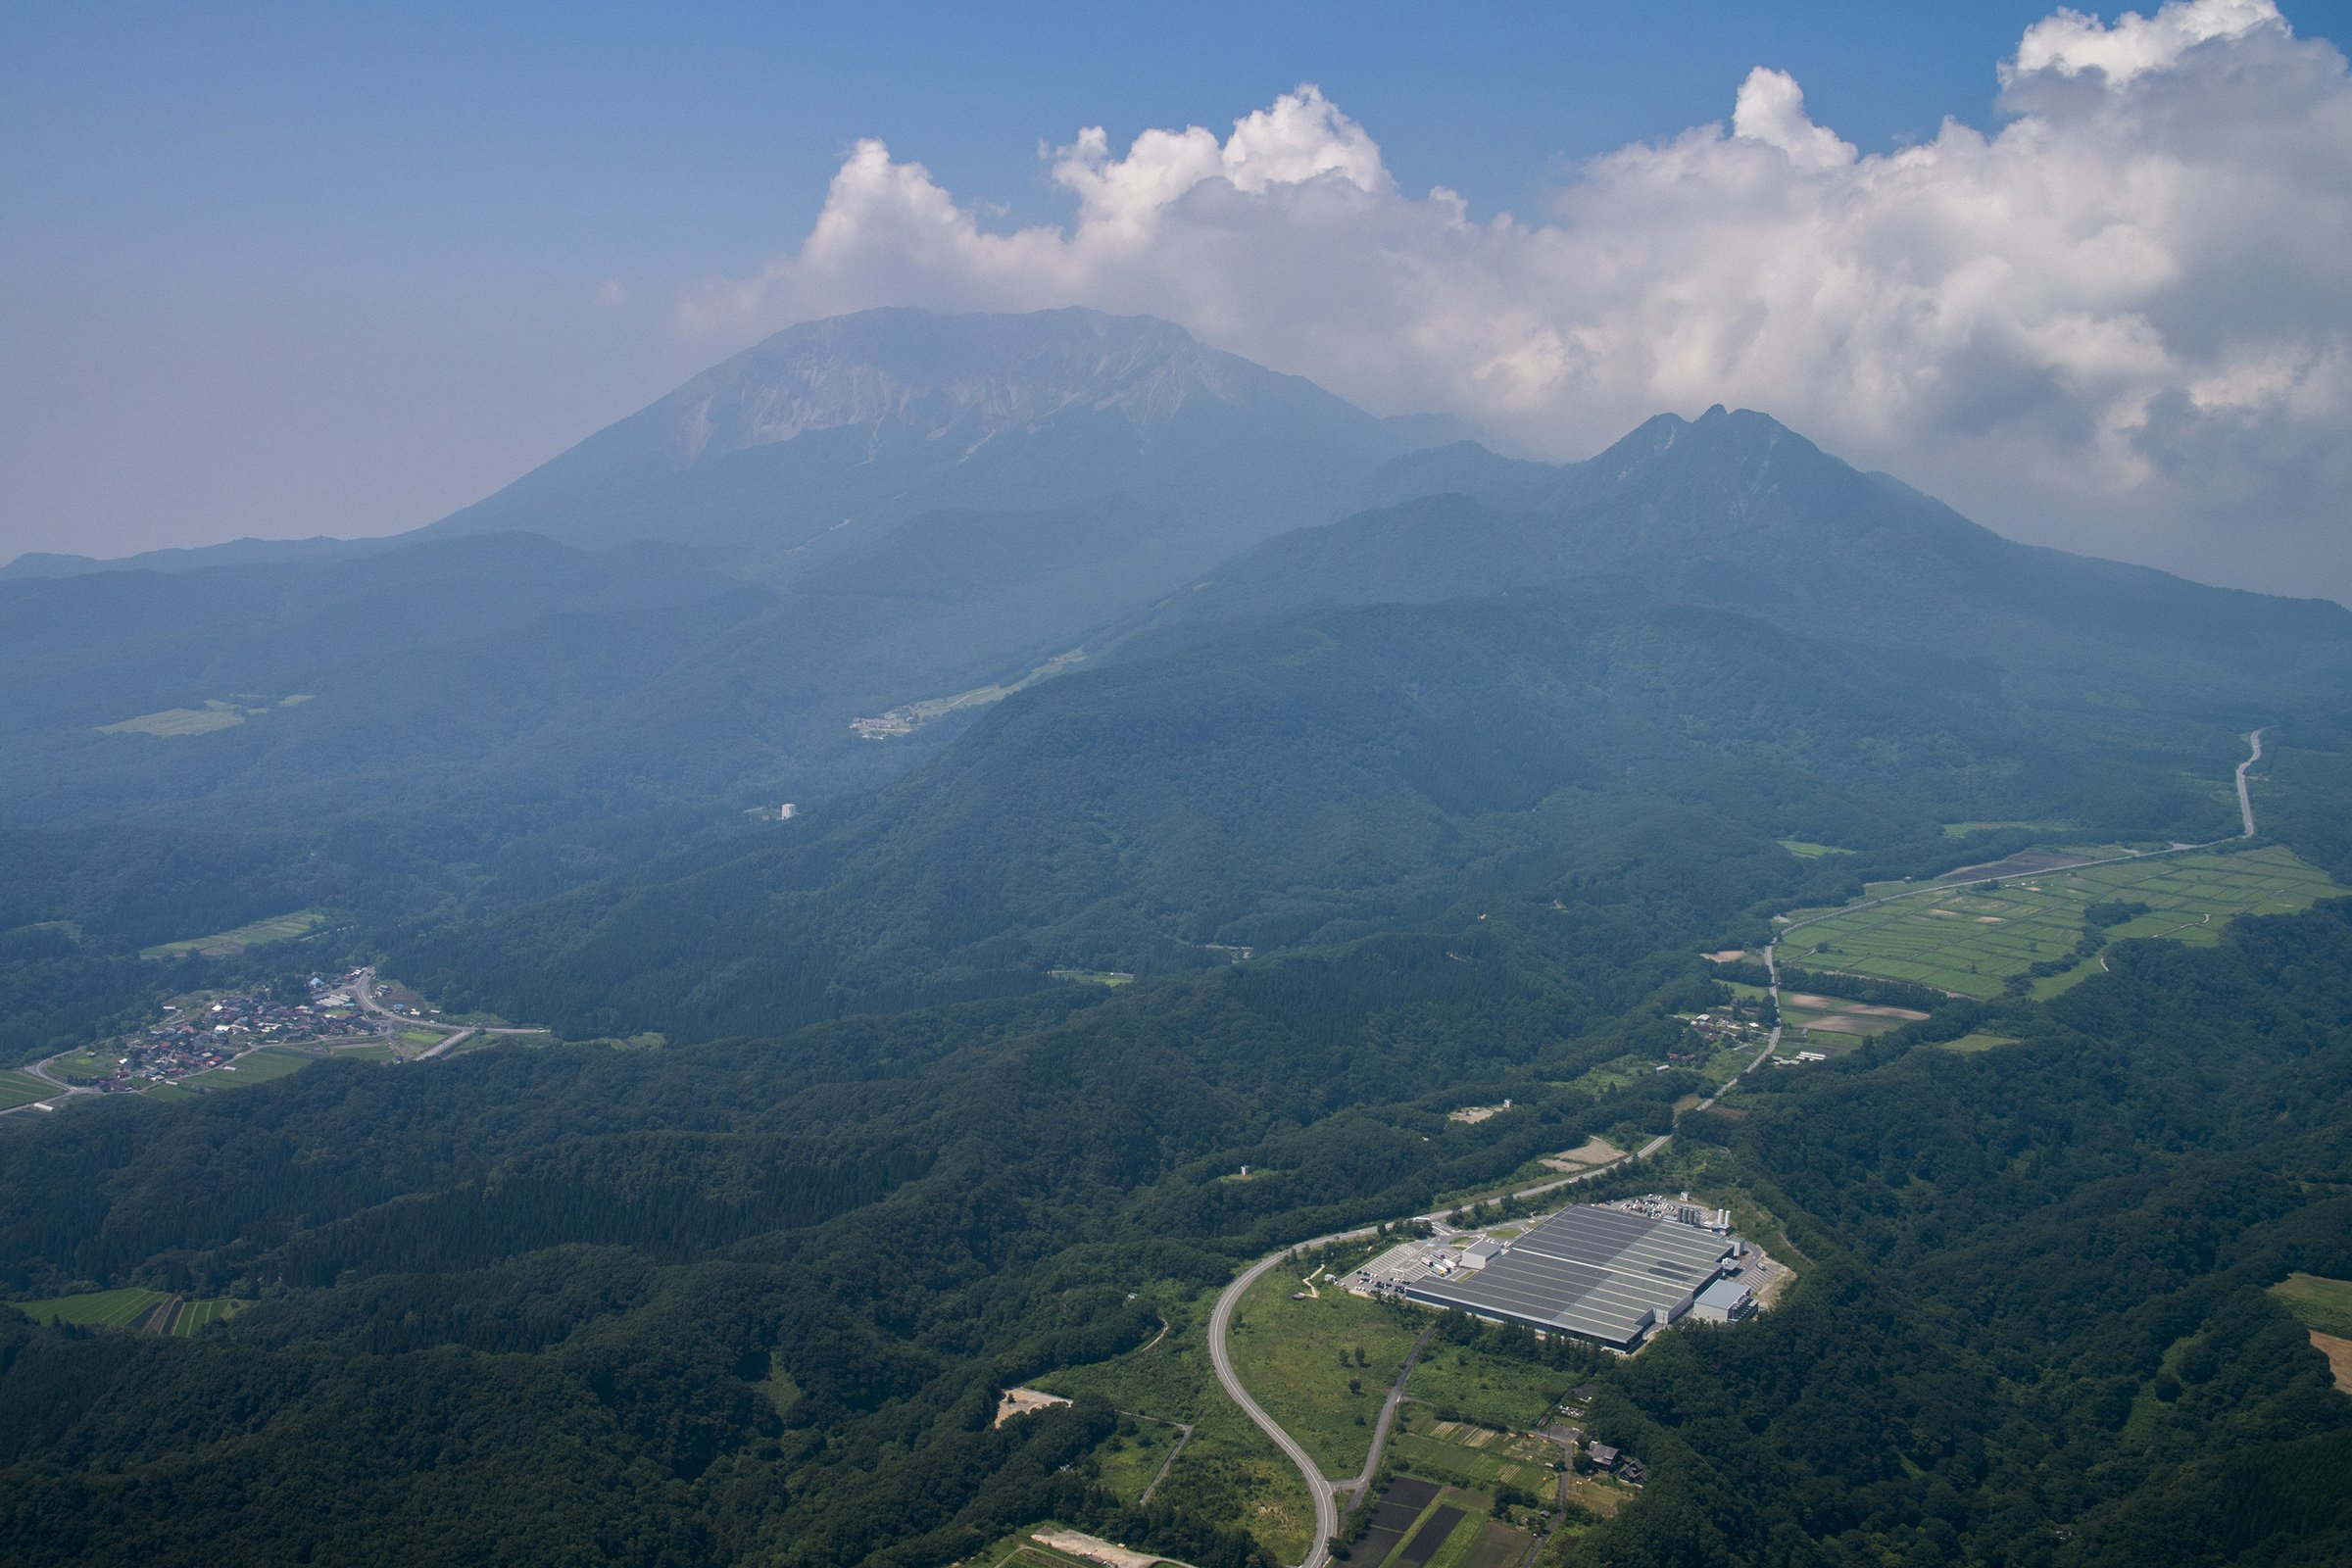 Photo: Suntory Okudaisen Bunanomori Water Plant that lives in harmony with the rich natural environment.